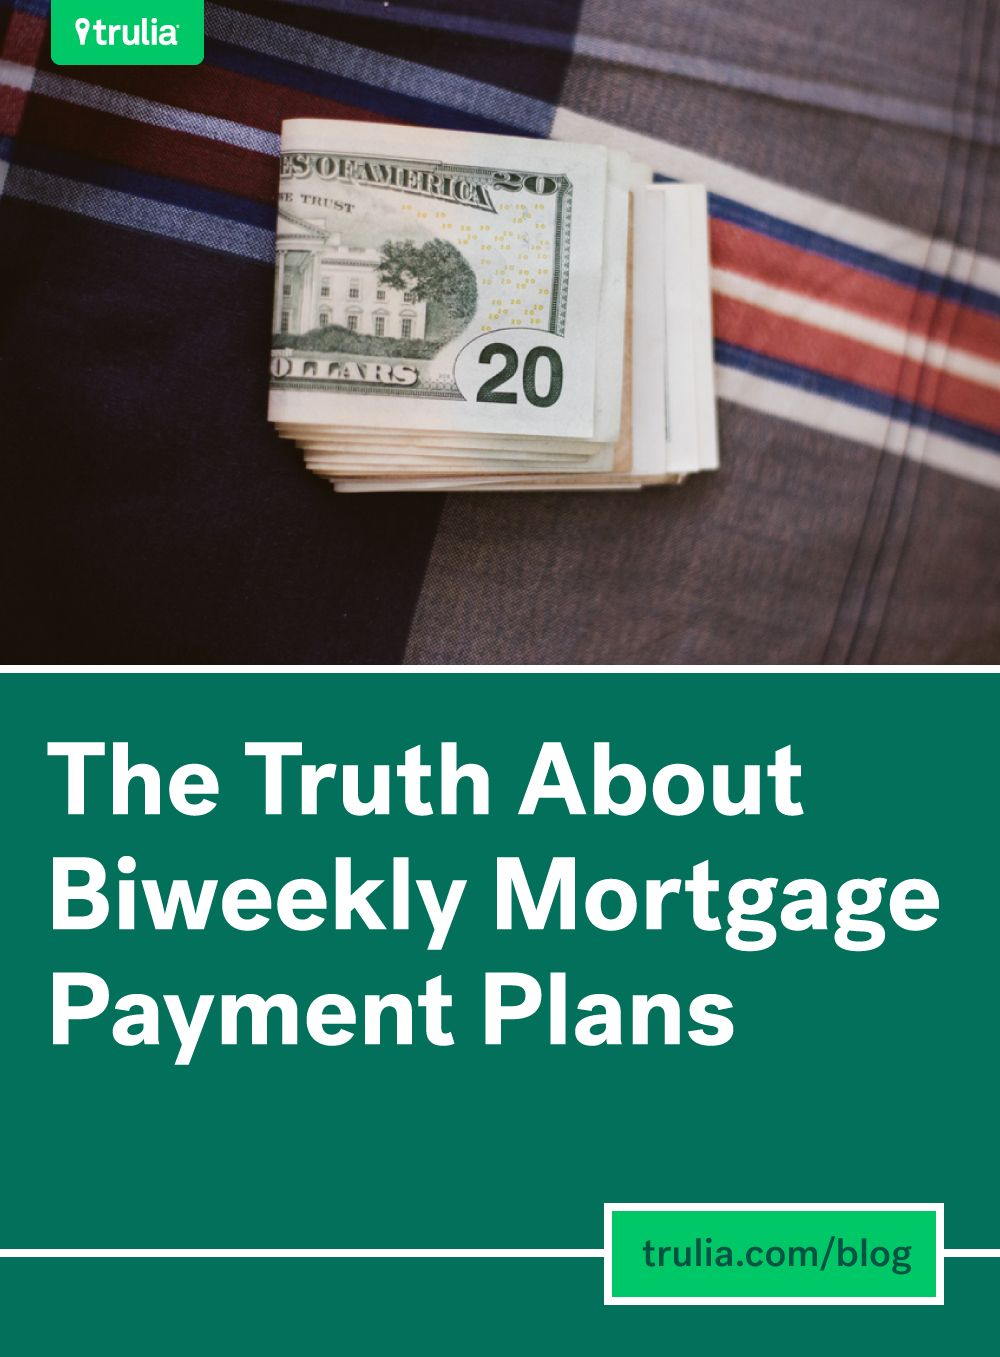 do biweekly payment plans help pay off mortgage early   u2013 money matters  u2013 trulia blog